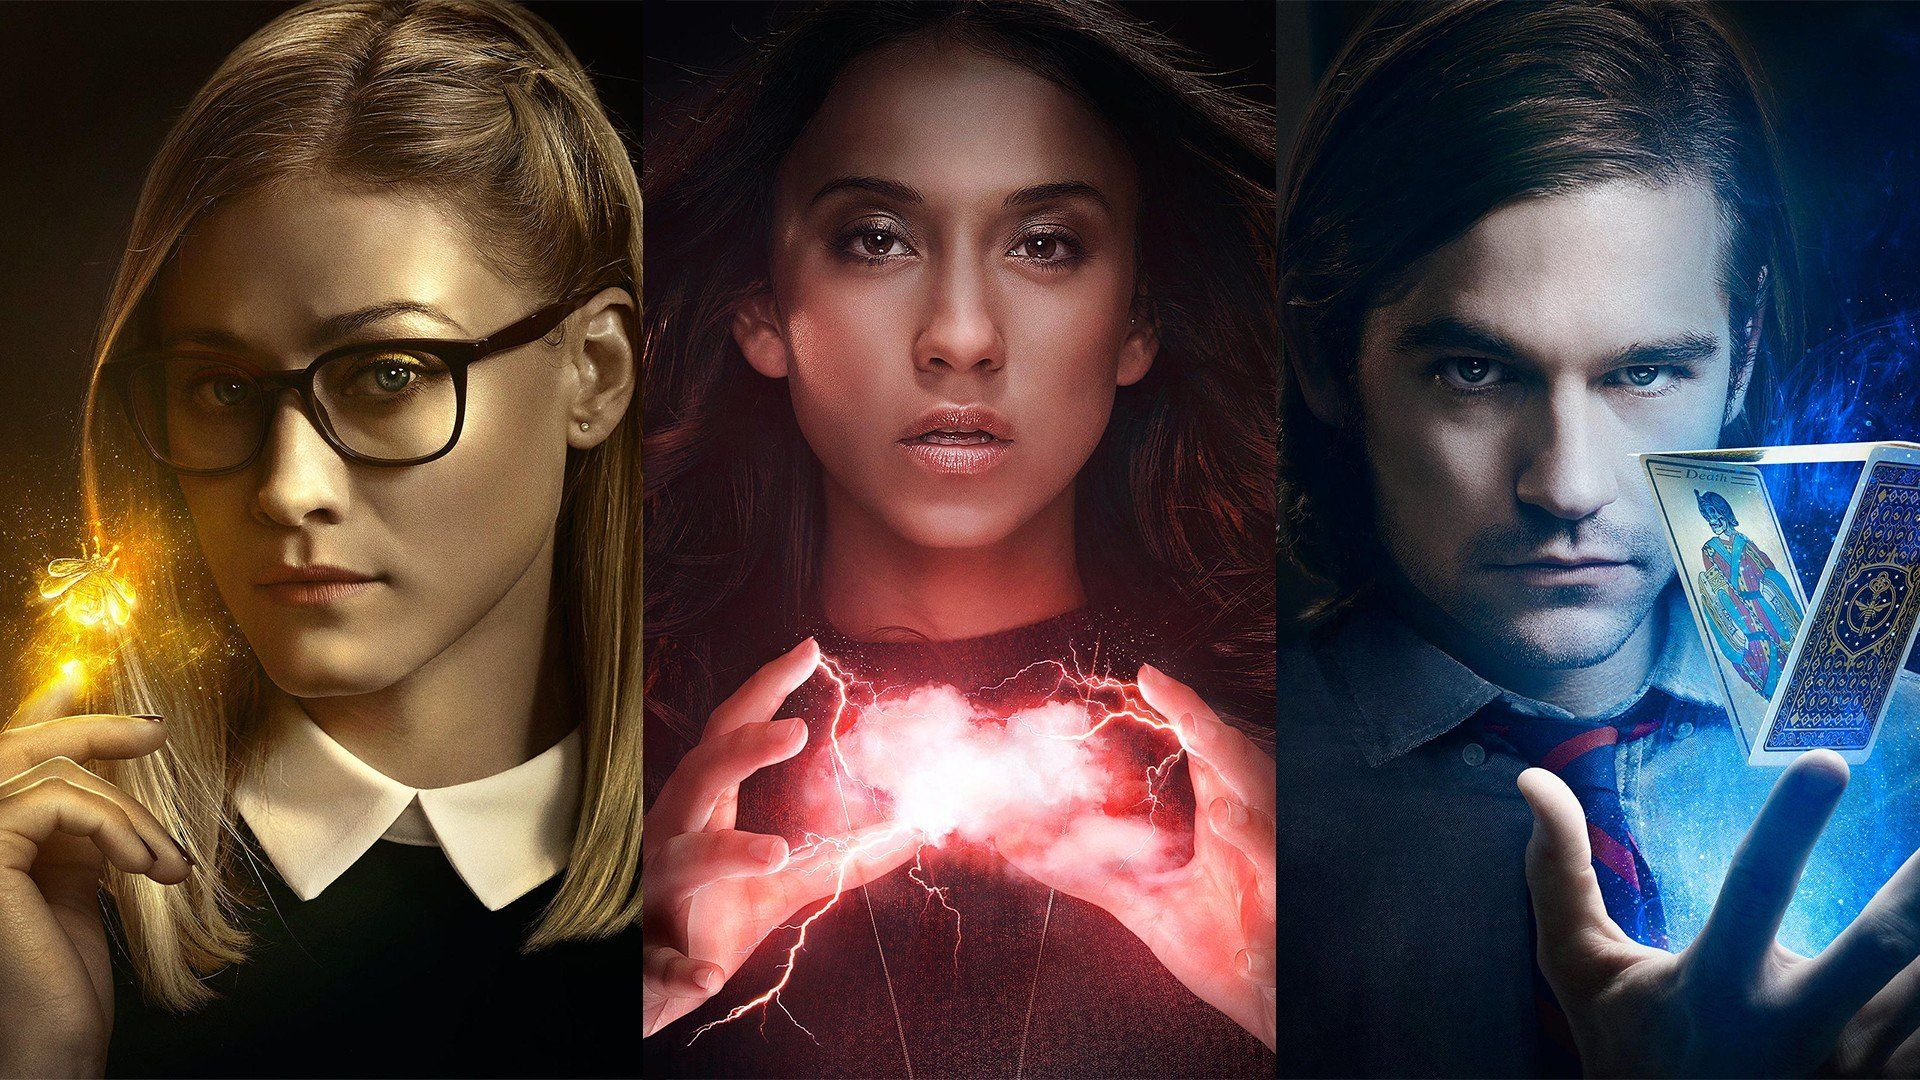 Download Hd Wallpapers Of 363384 The Magicians Collage Free Download High Quality And Widescreen Resolutions Desk The Magicians Wallpaper Backgrounds Desktop